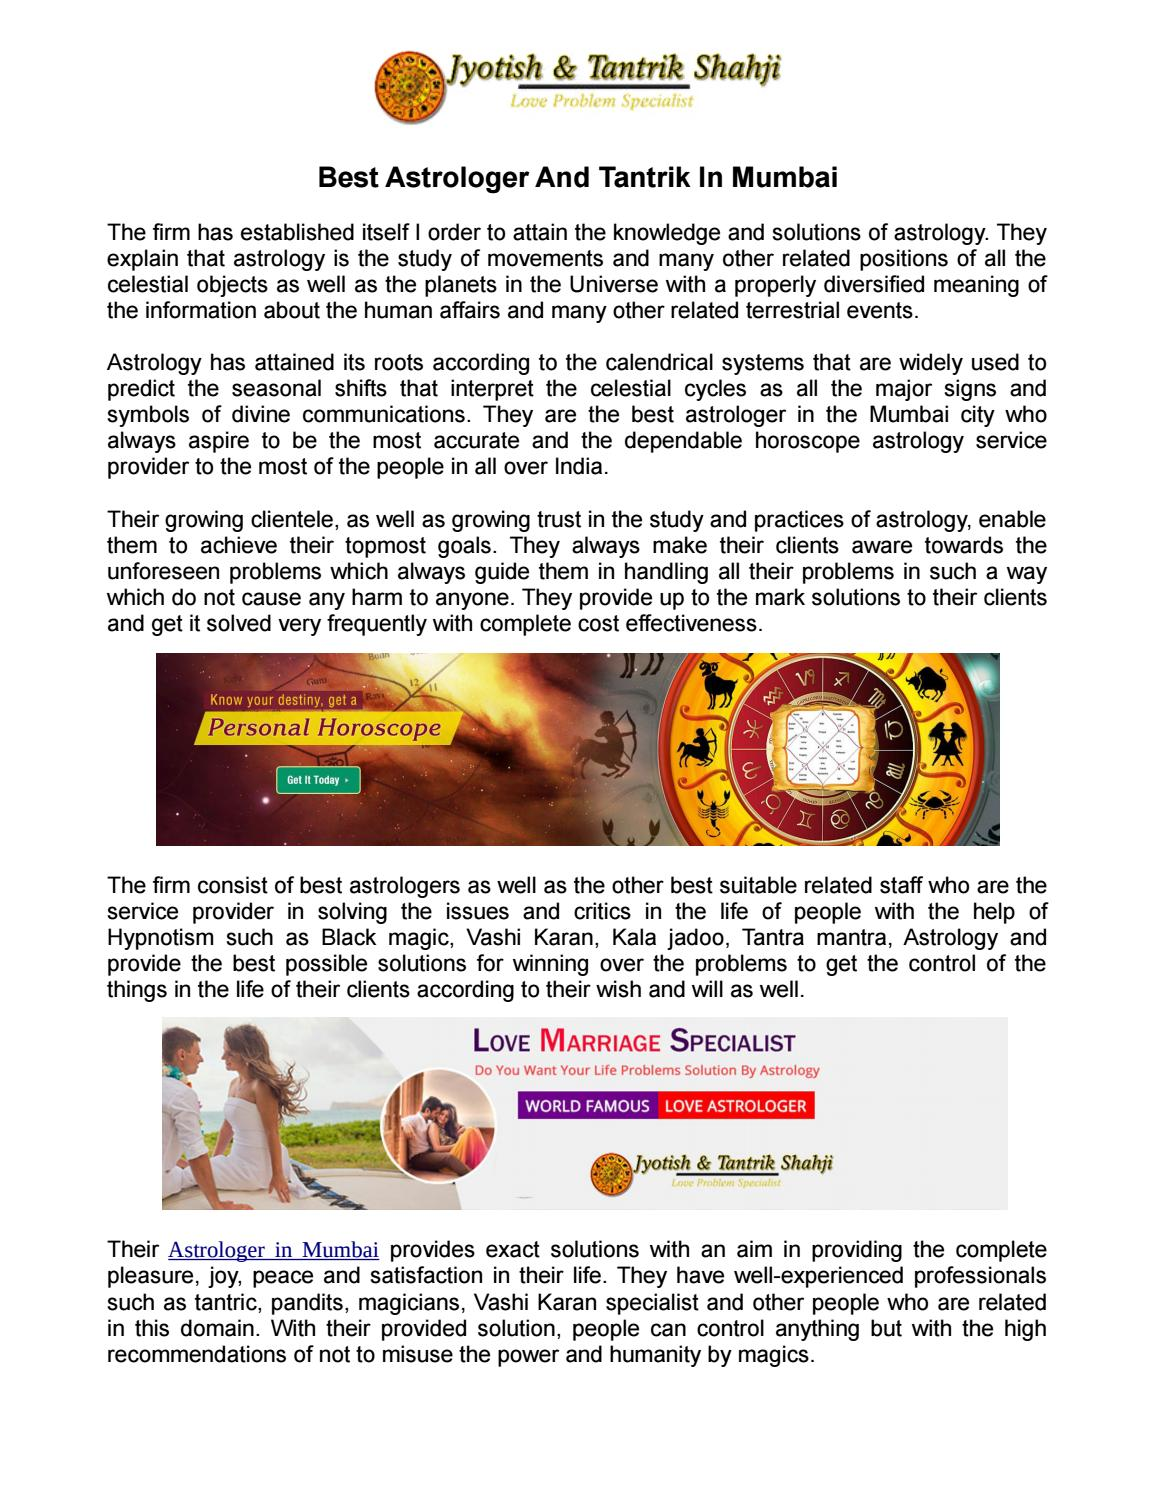 Best Astrologer And Tantrik In Mumbai by jyotishshahji - issuu